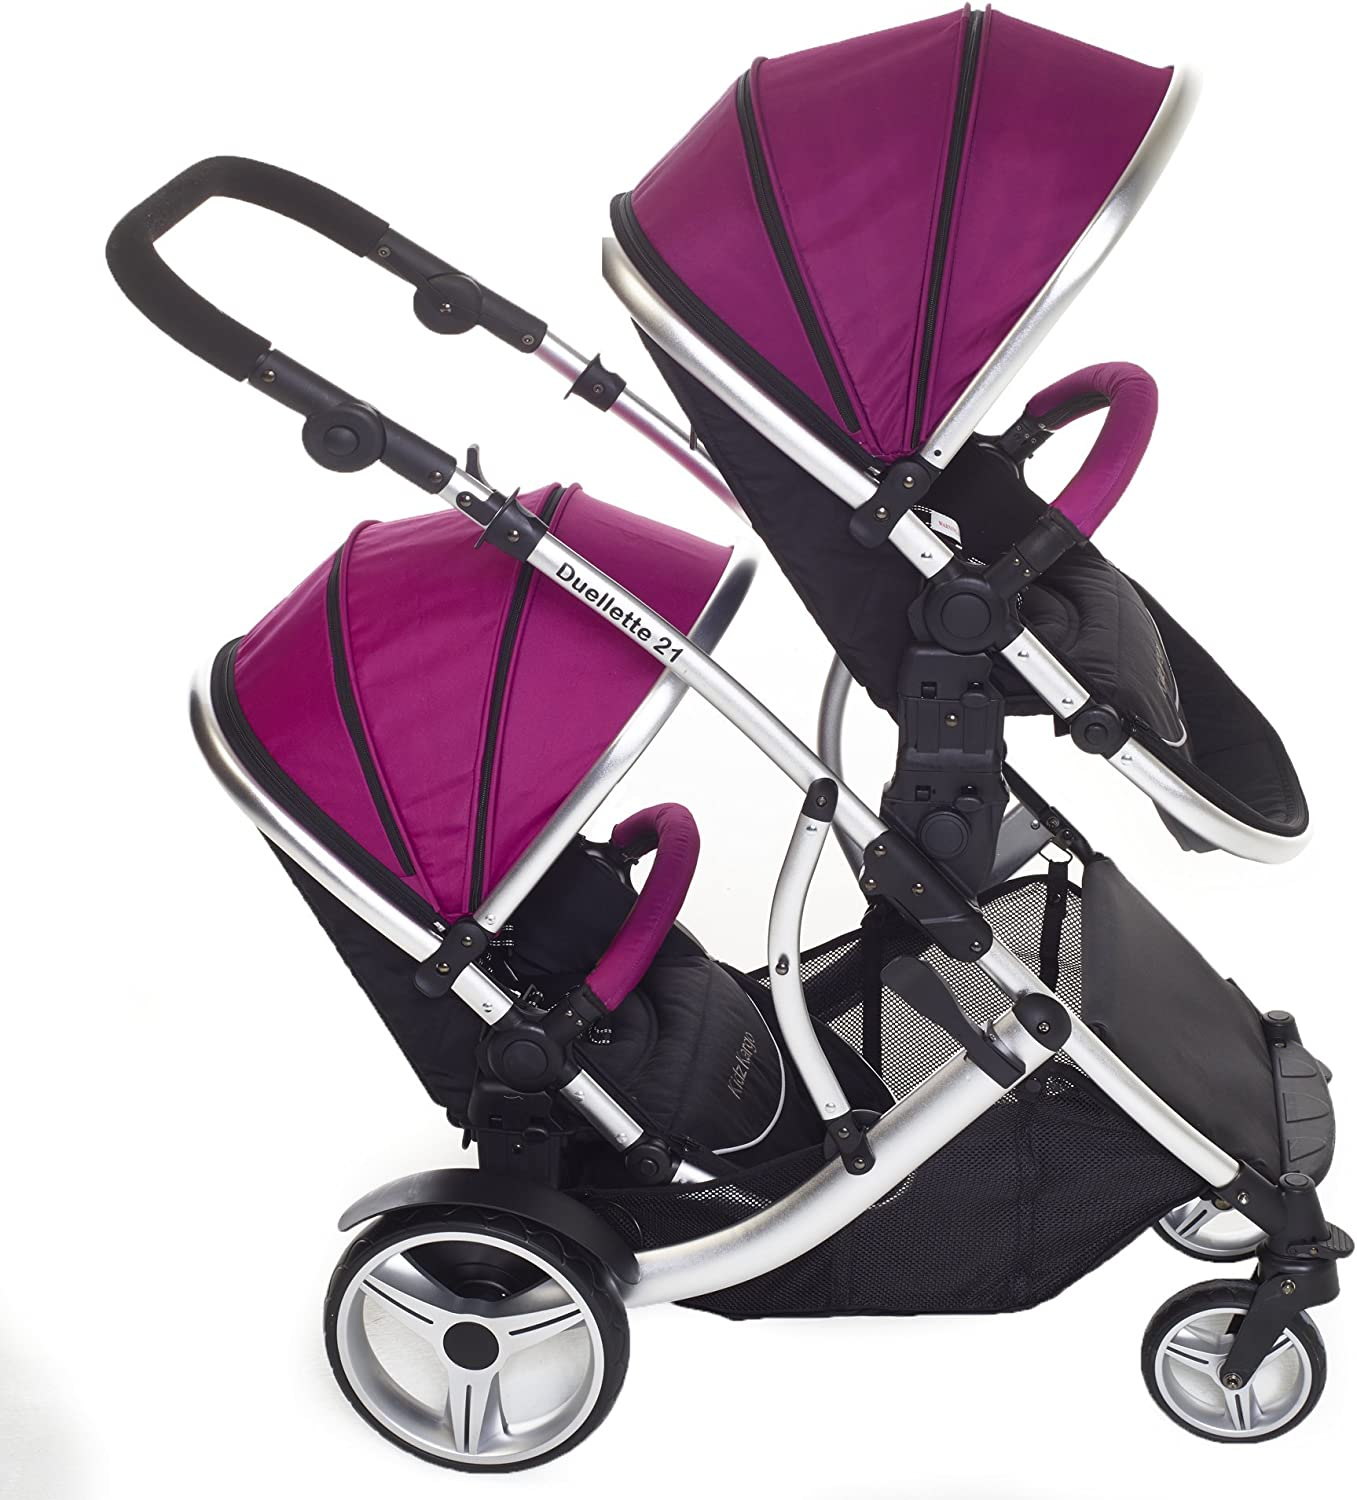 Duellette 21 BS Twin Double Pushchair Stroller Buggy Raspberry Brand New Colour Range!